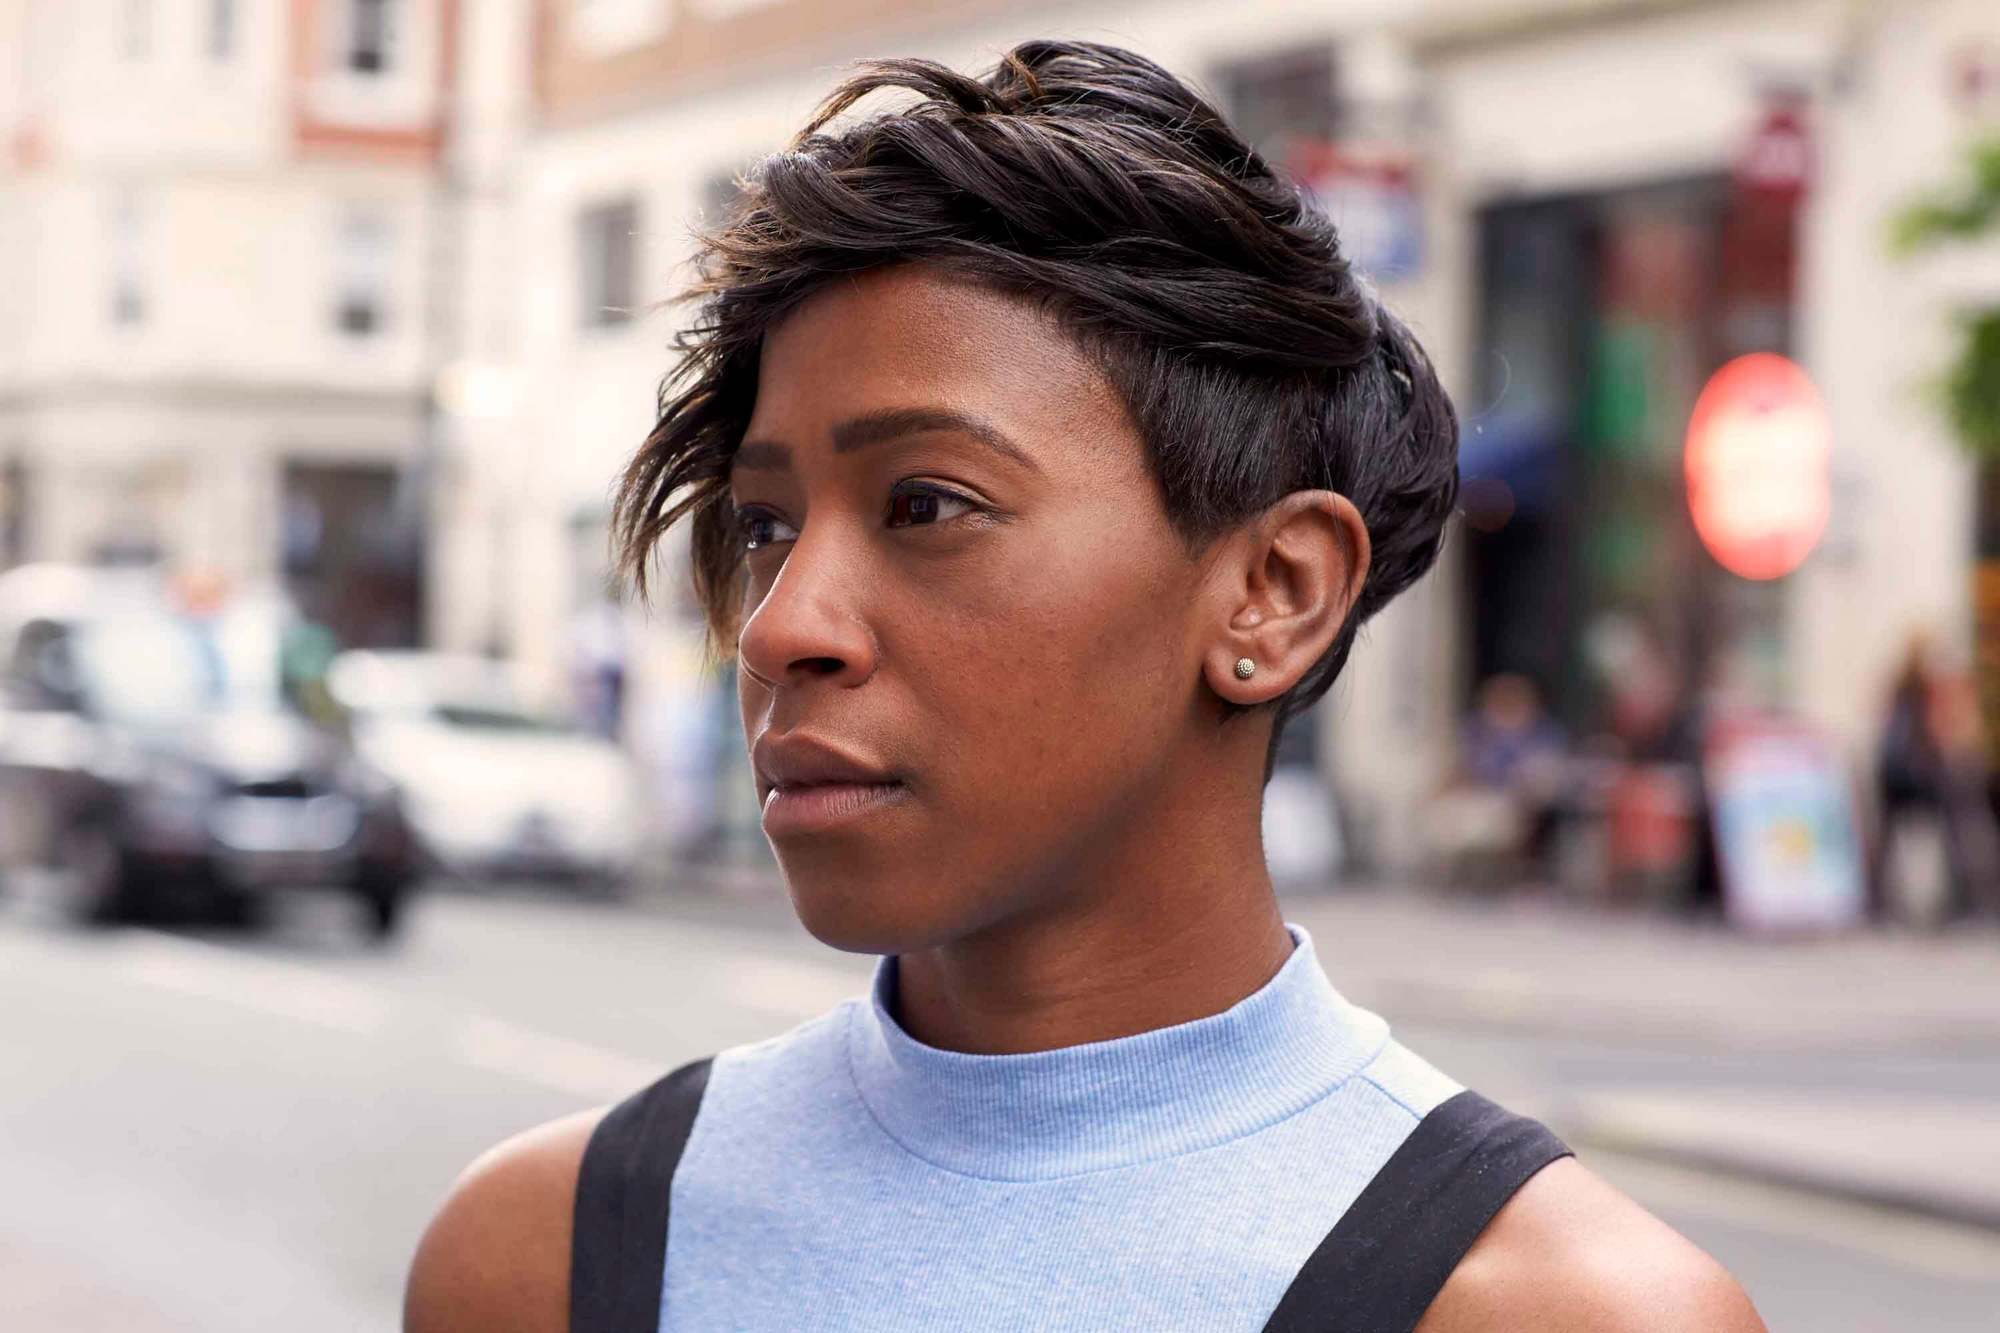 Image result for pixie cut black woman